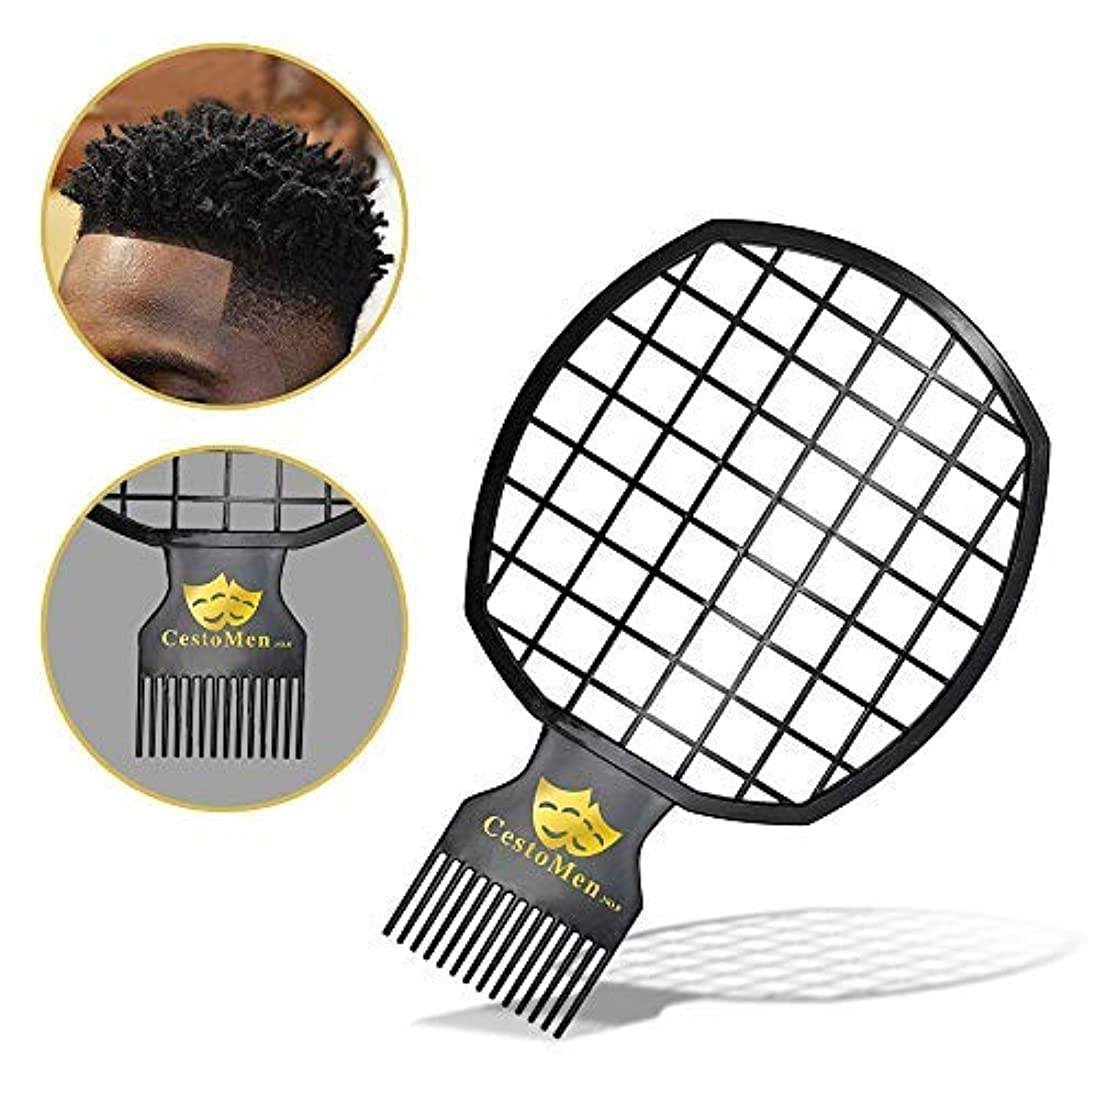 マリナー凍ったゆりかごMagic Twist Hair Coils Comb Tool, Afro Pick Hair Curl Sponge Brush (Black) [並行輸入品]